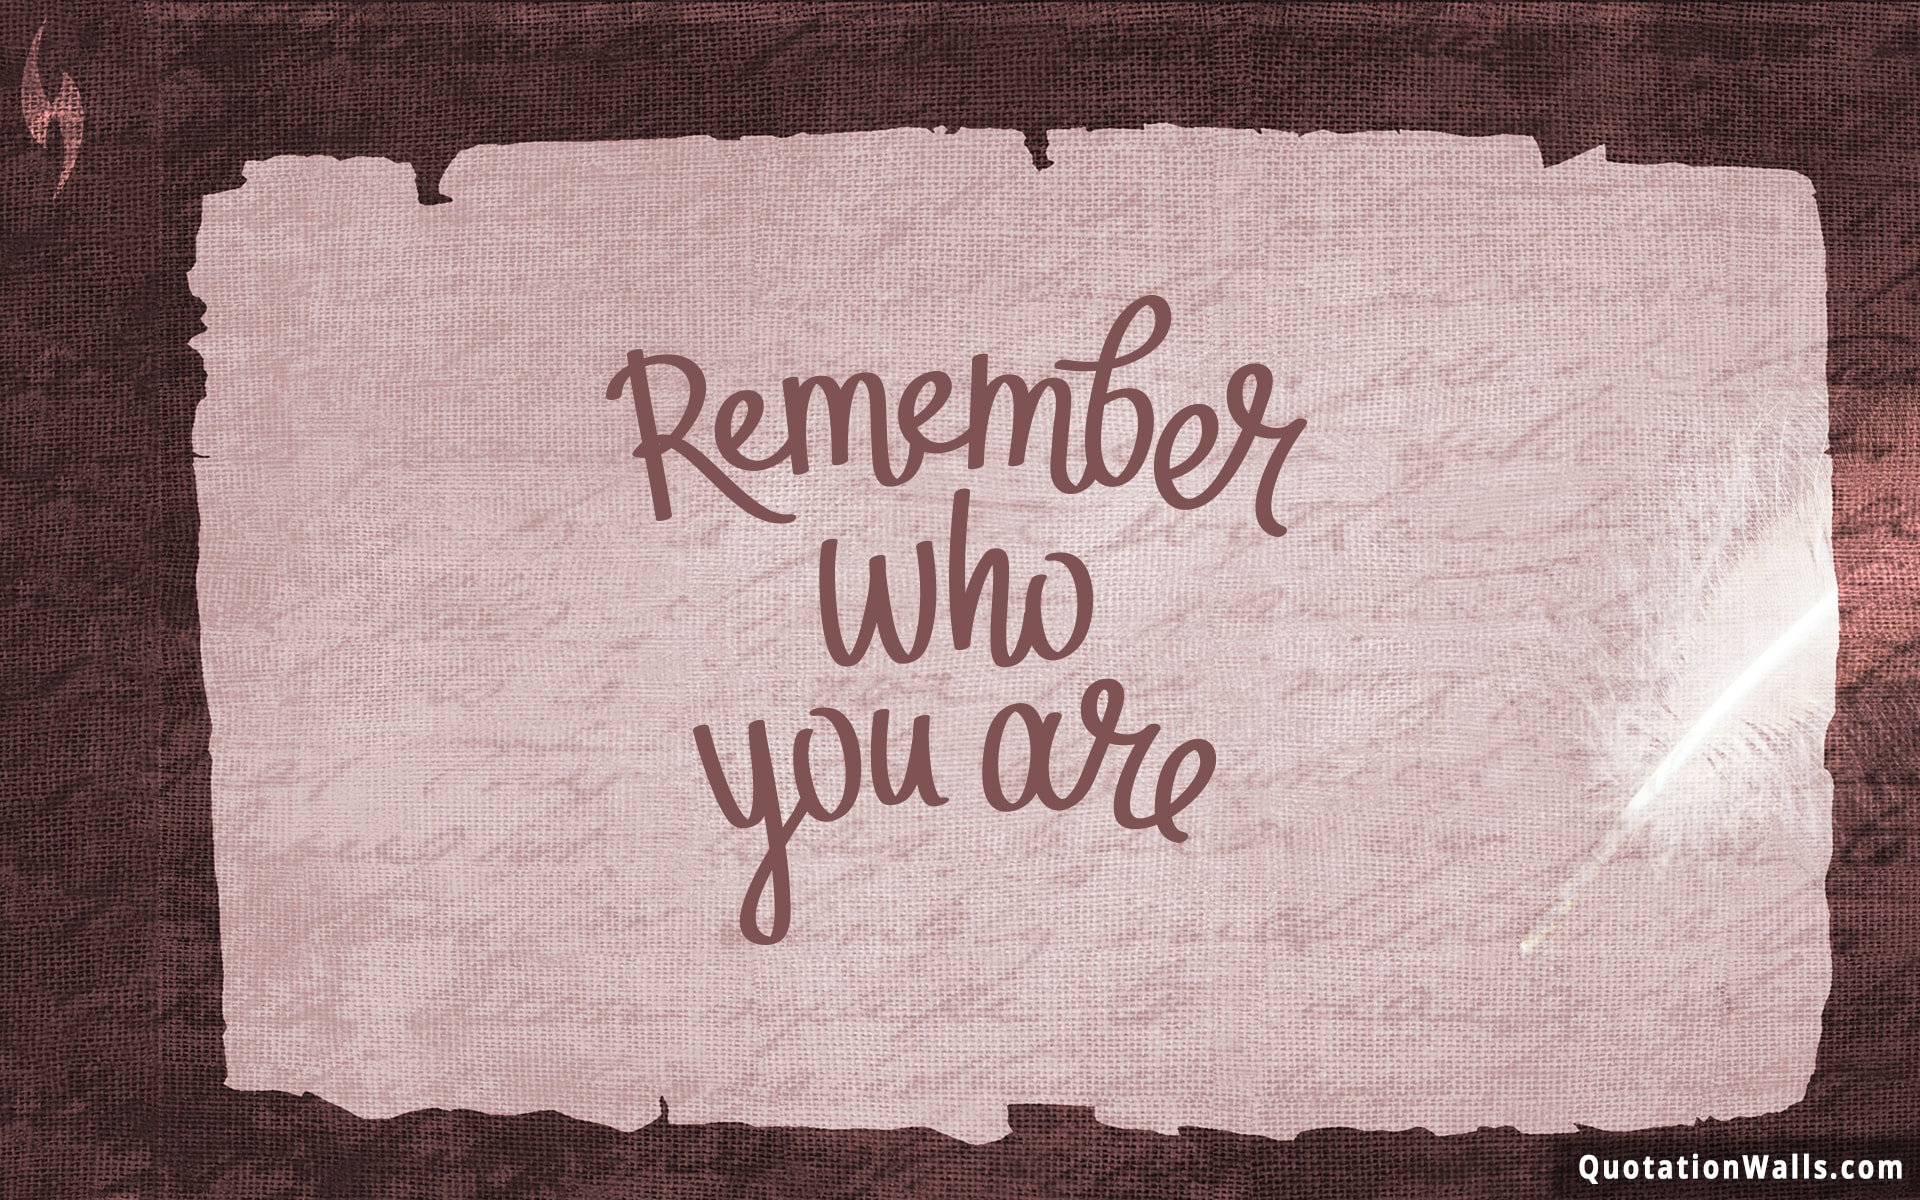 Remember Who You Are Motivational Wallpaper For Desktop Quotationwalls